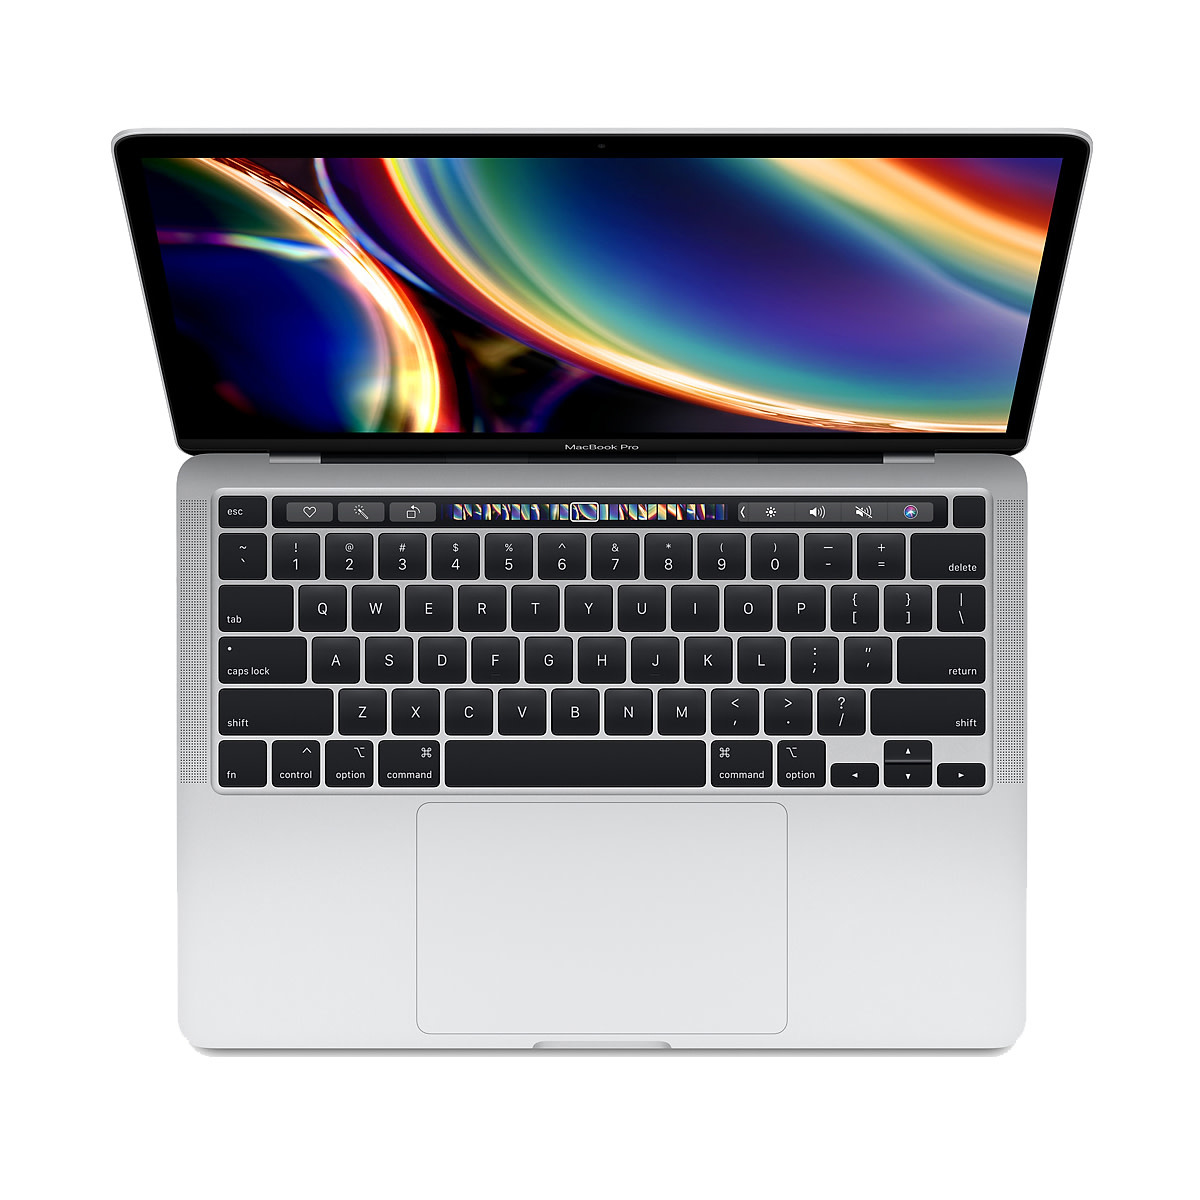 Apple 13-inch MacBook Pro with Touch Bar - Silver 2.0GHz quad-core 10th-generation Intel Core i5 processor, 1TB